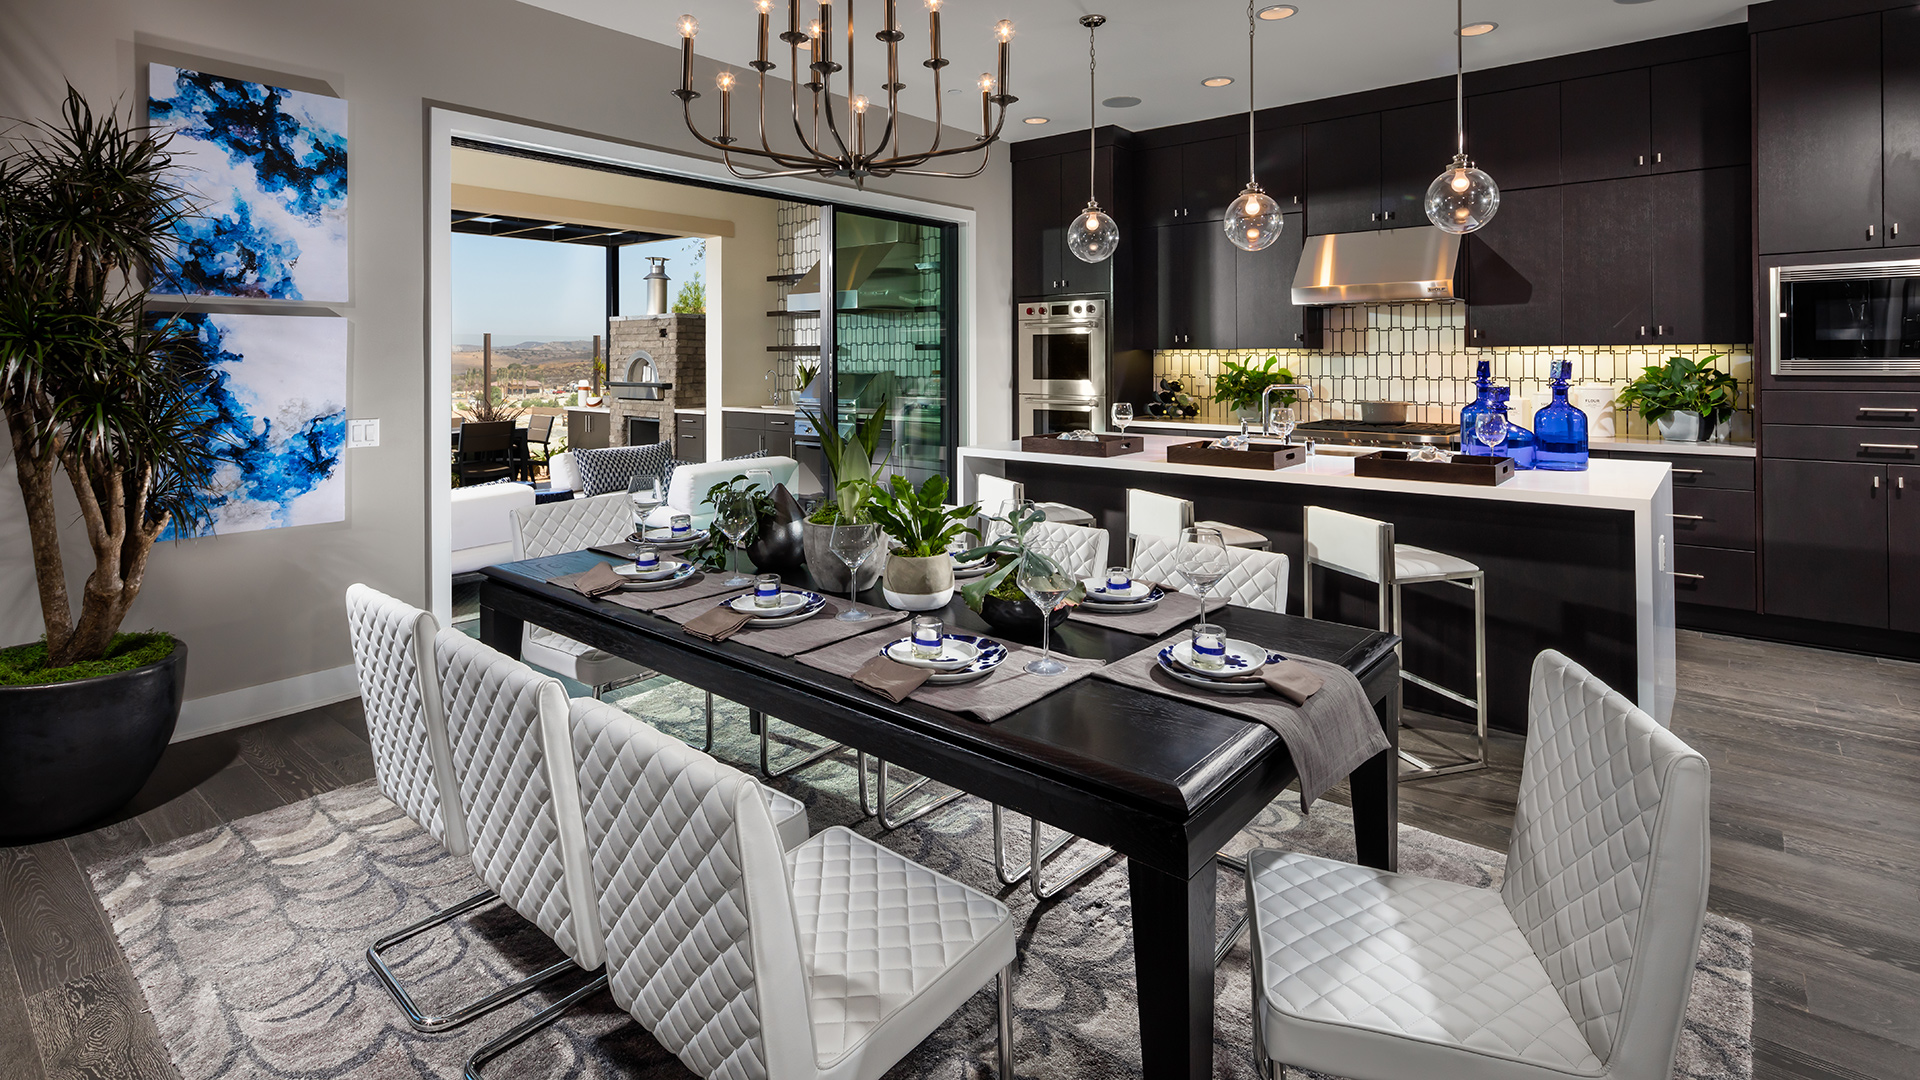 Spacious floor plans create the perfect environment for hosting friends and family.